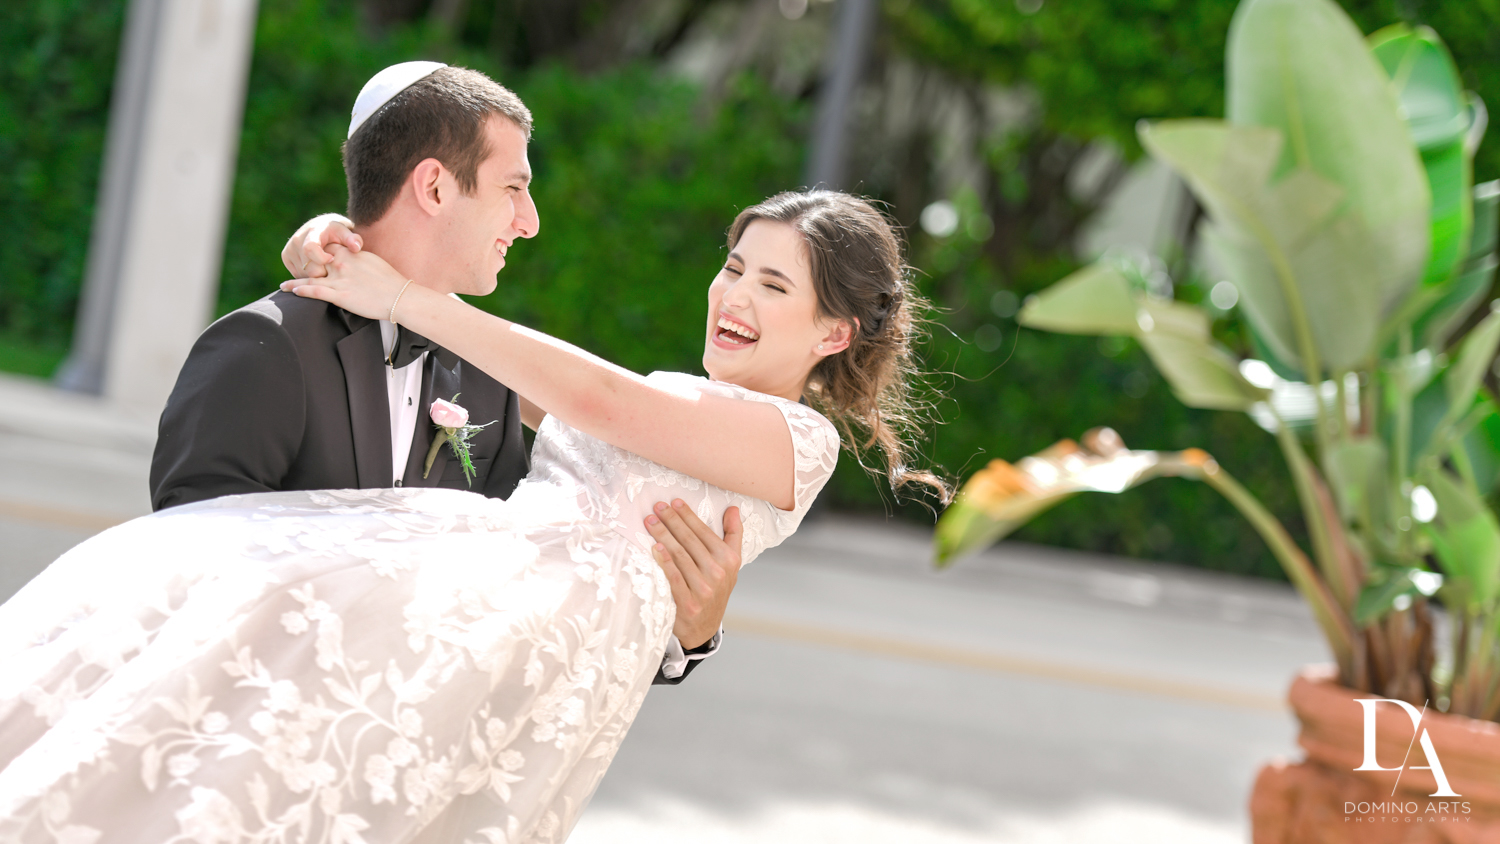 romantic photos at Luxury Summer Wedding at The Colony Hotel Palm Beach by Domino Arts Photography